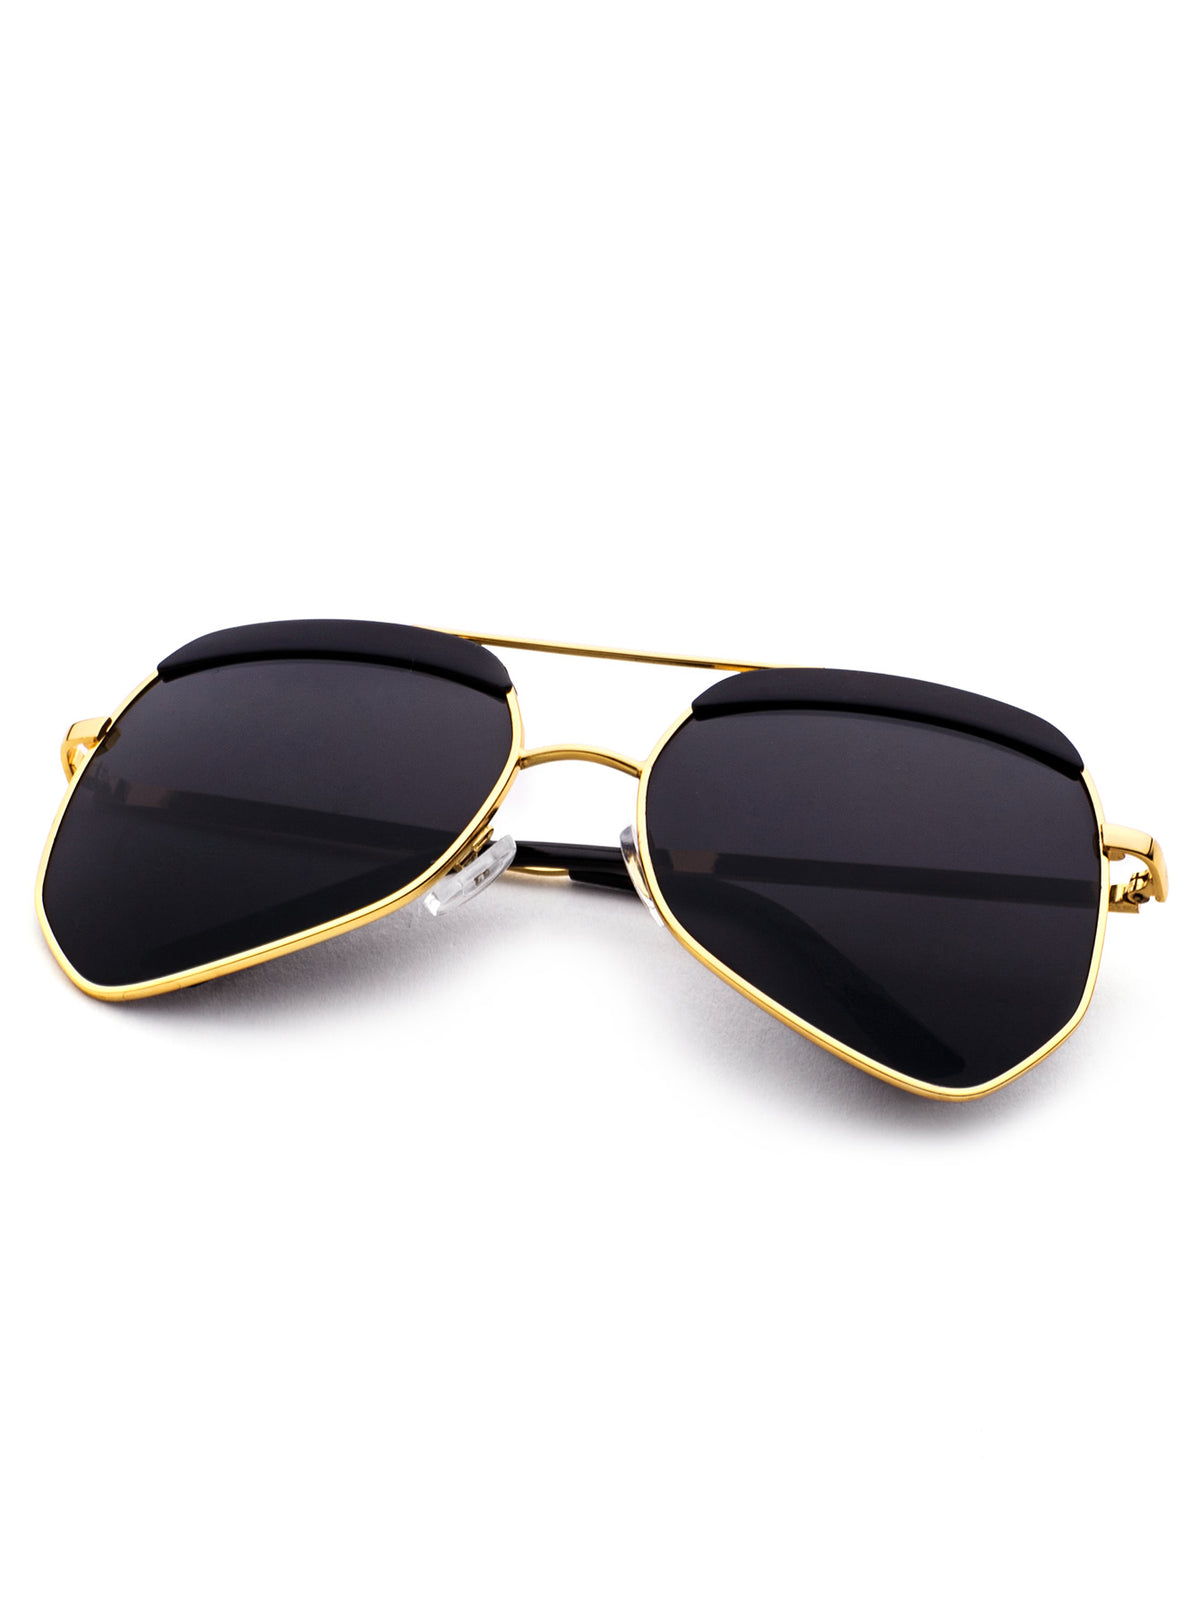 Gold Frame Double Bridge Black Lens Sunglasses